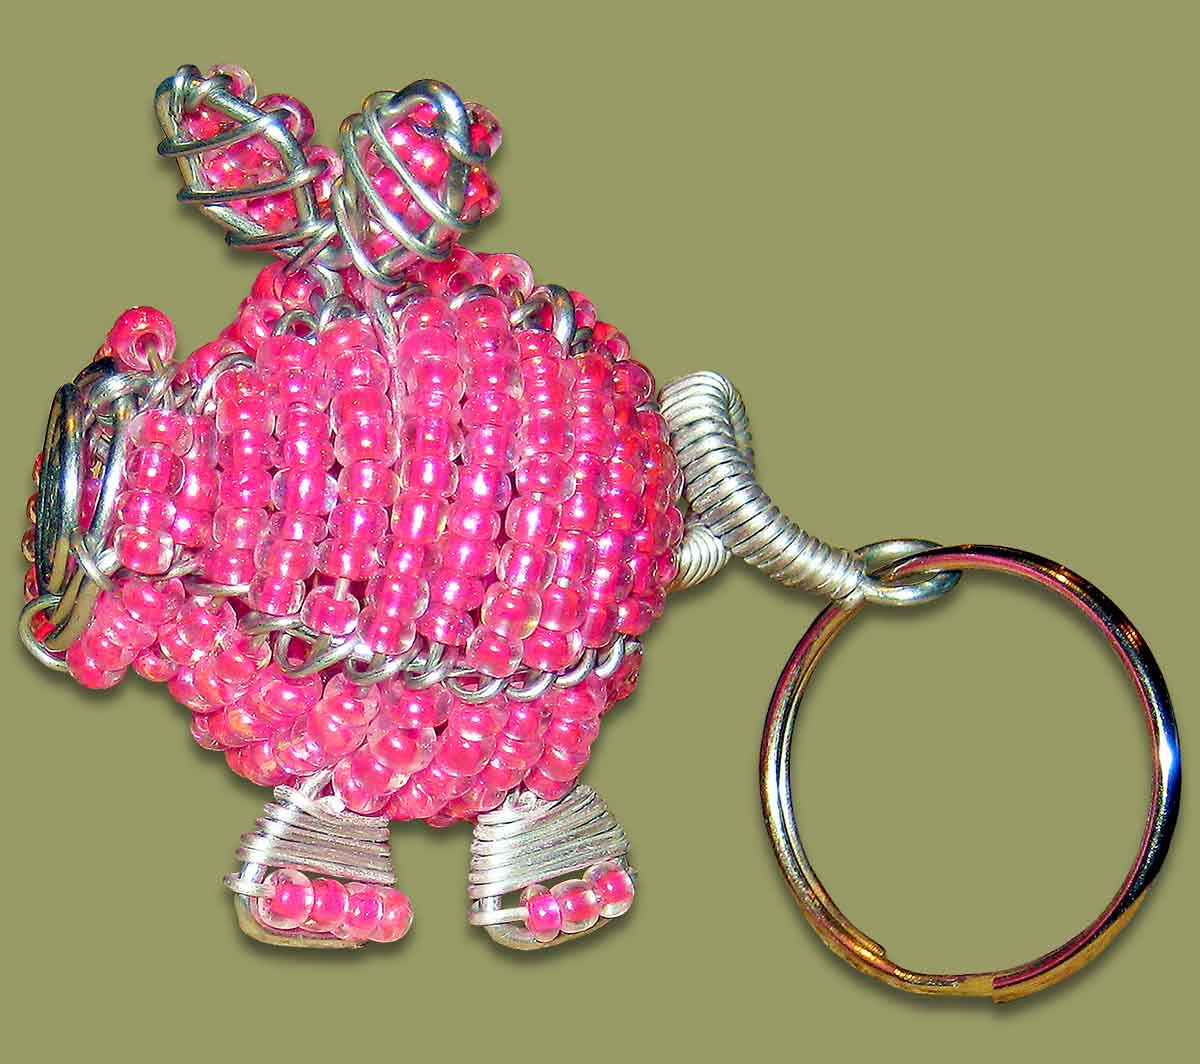 Beaded Key Ring Pig